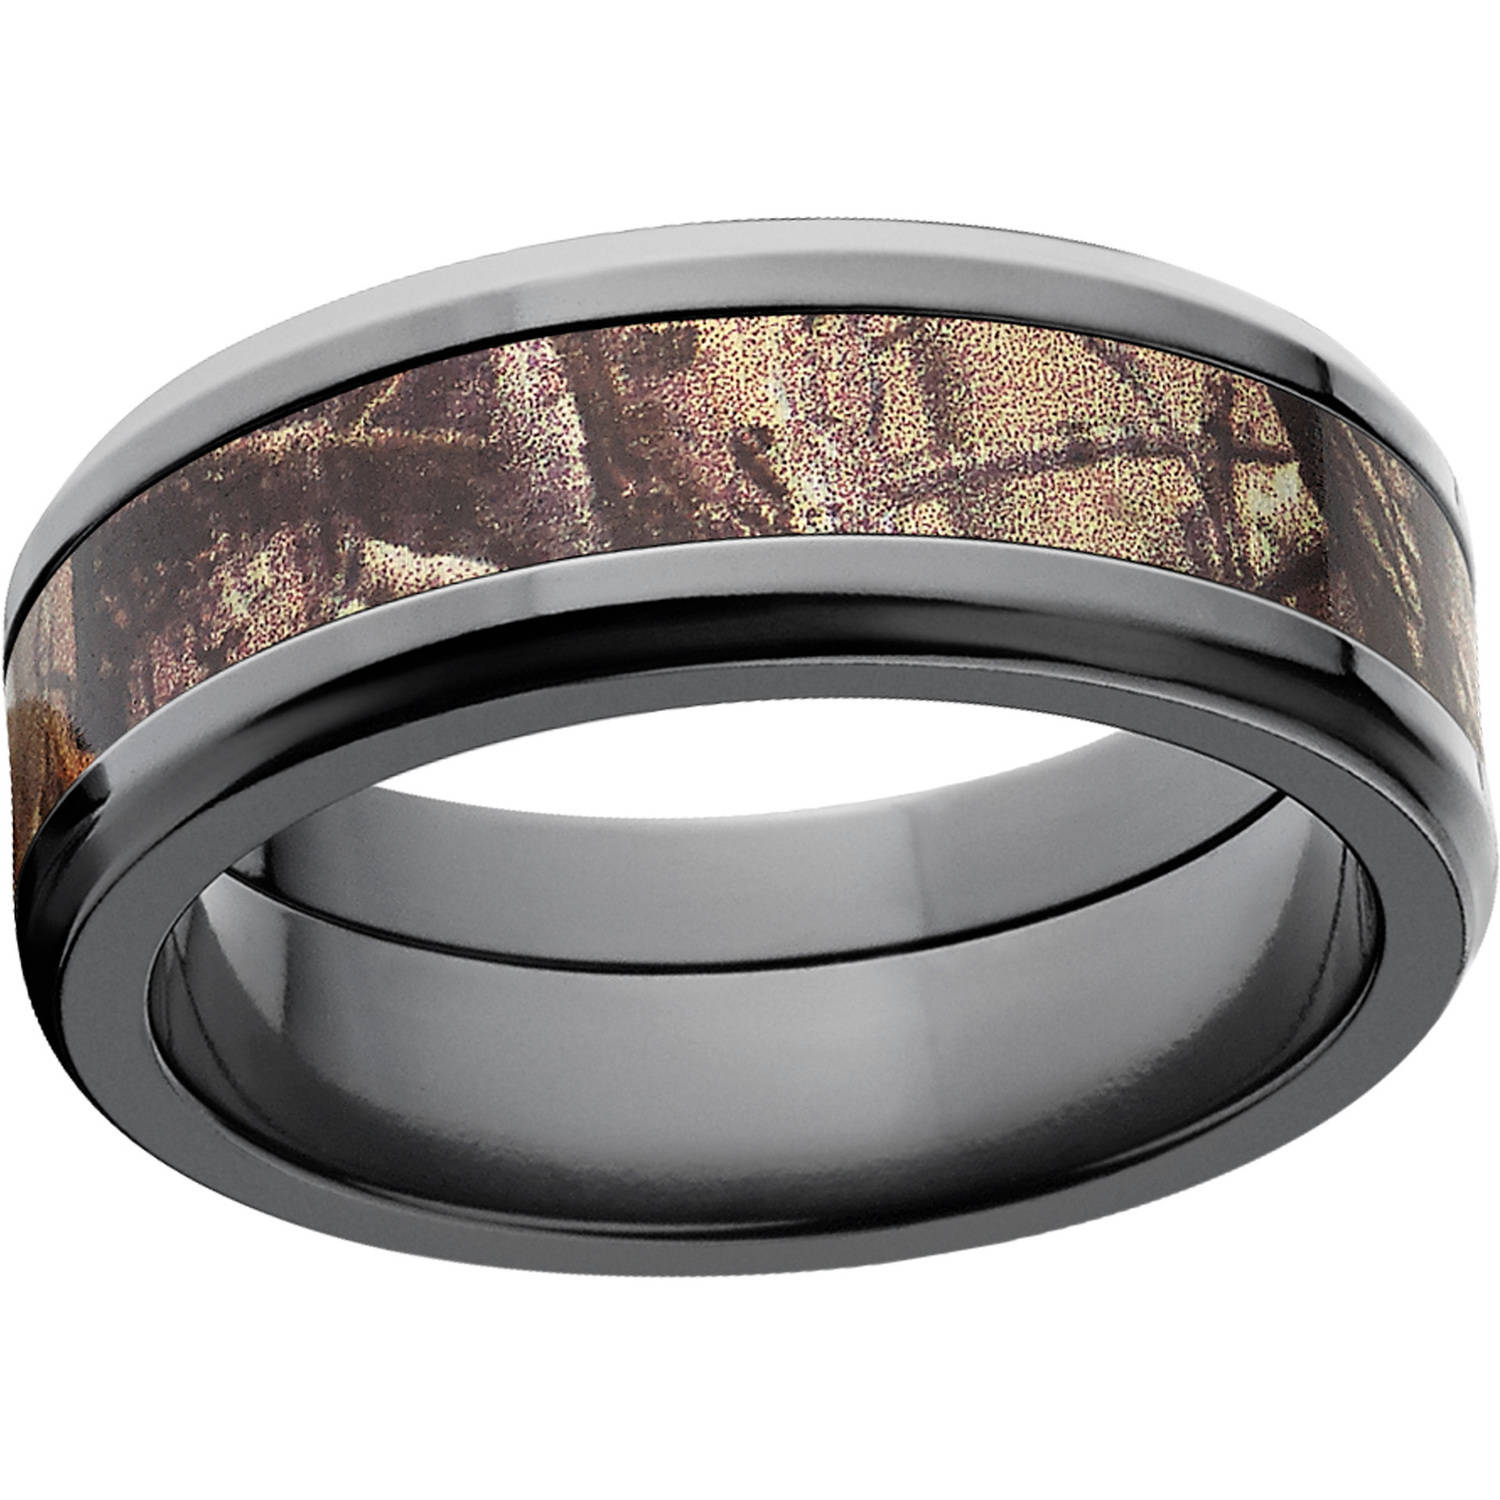 Realtree AP Men's Camo 8mm Black Zirconium Wedding Band